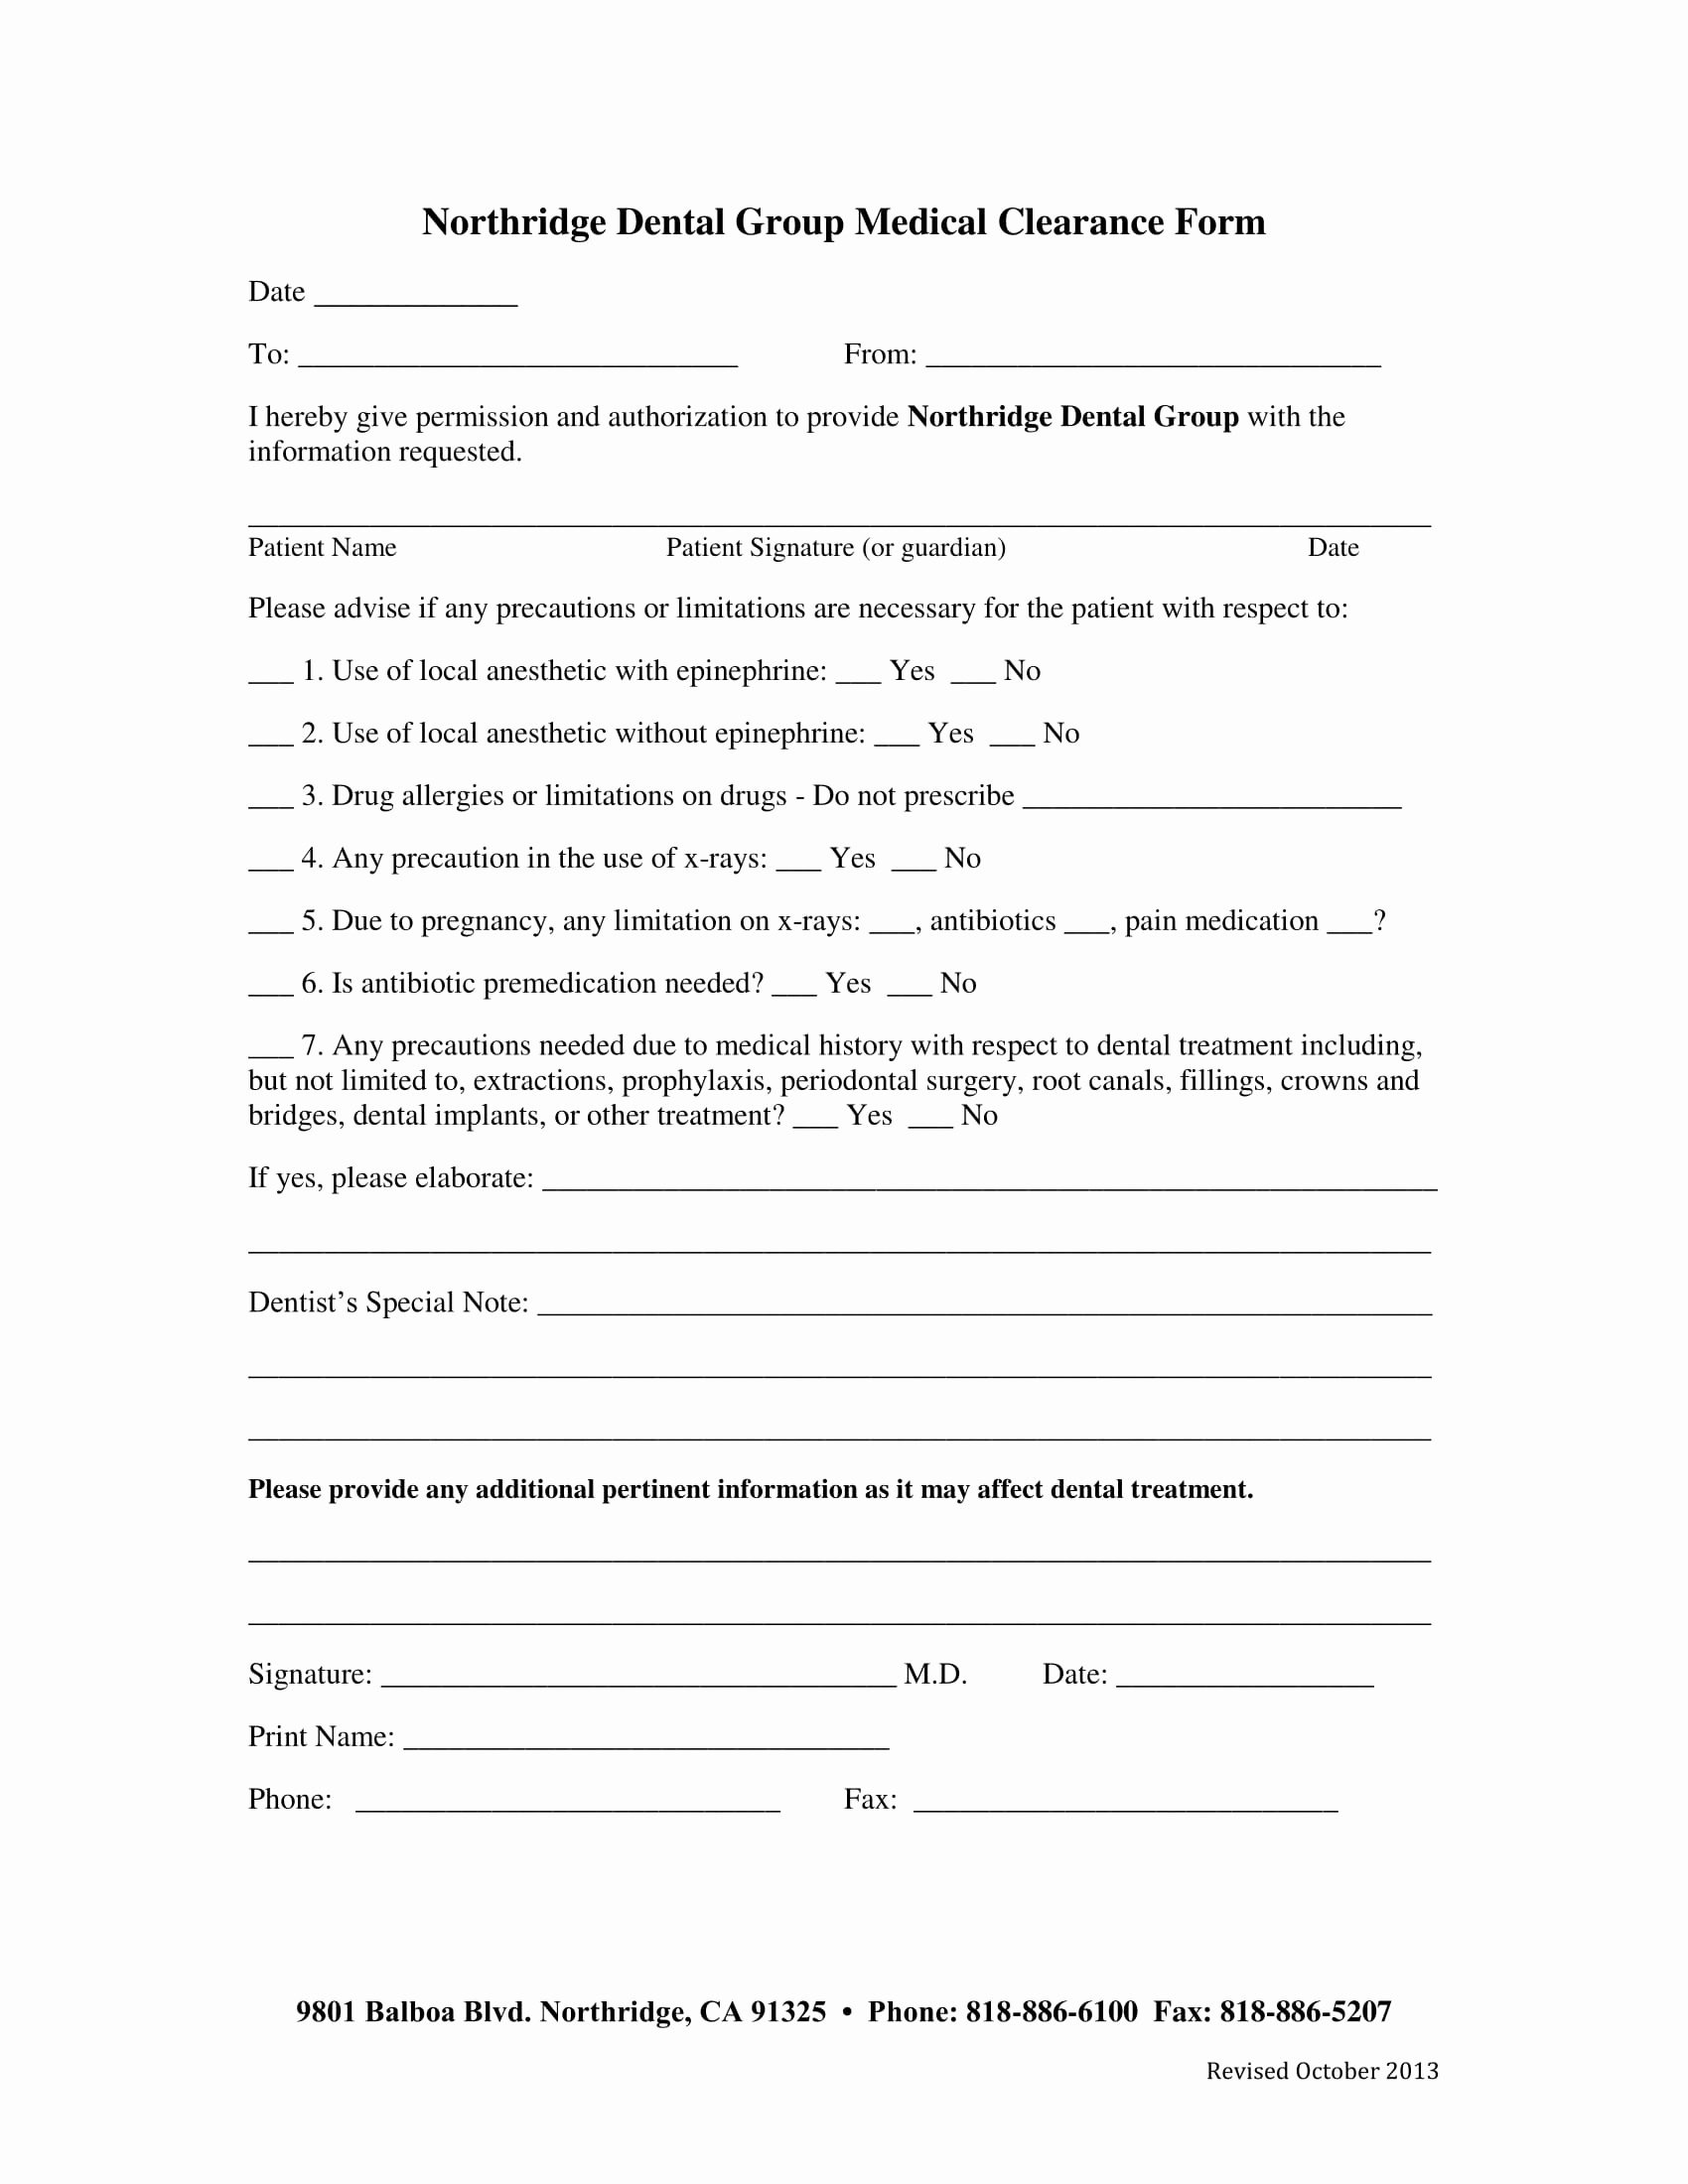 Medical Clearance Letter Template New Free 14 Dental Medical Clearance forms In Pdf